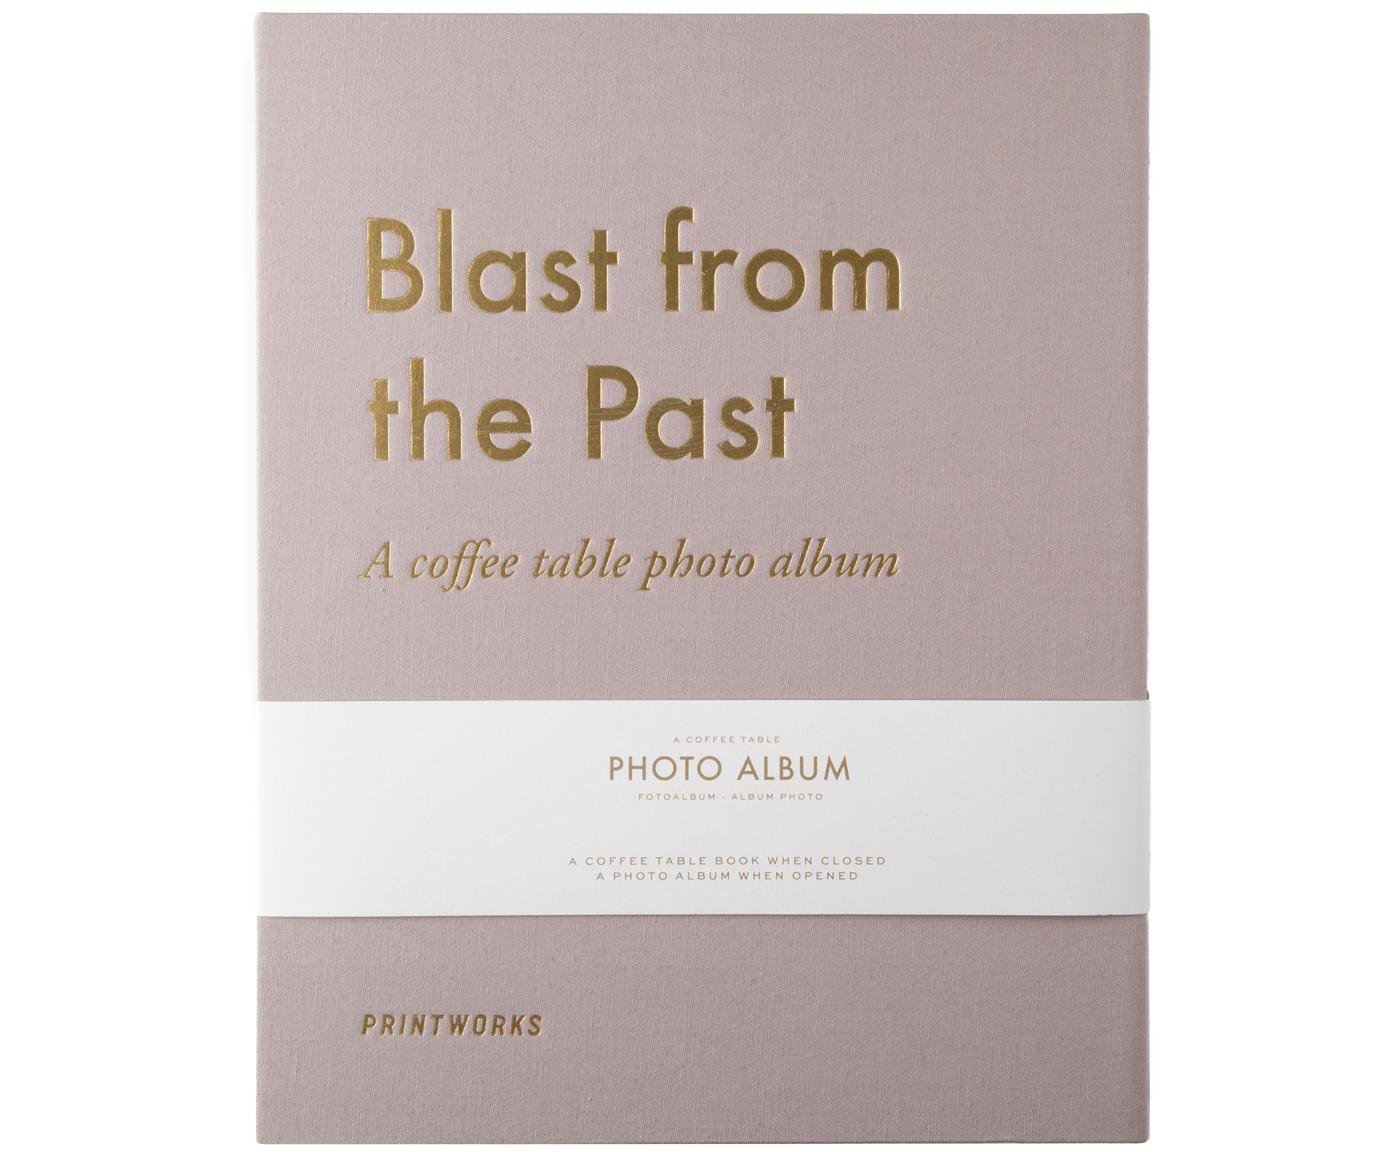 Album fotografico Blast from the Past, Taupe, dorato, L 34 x P 29 cm